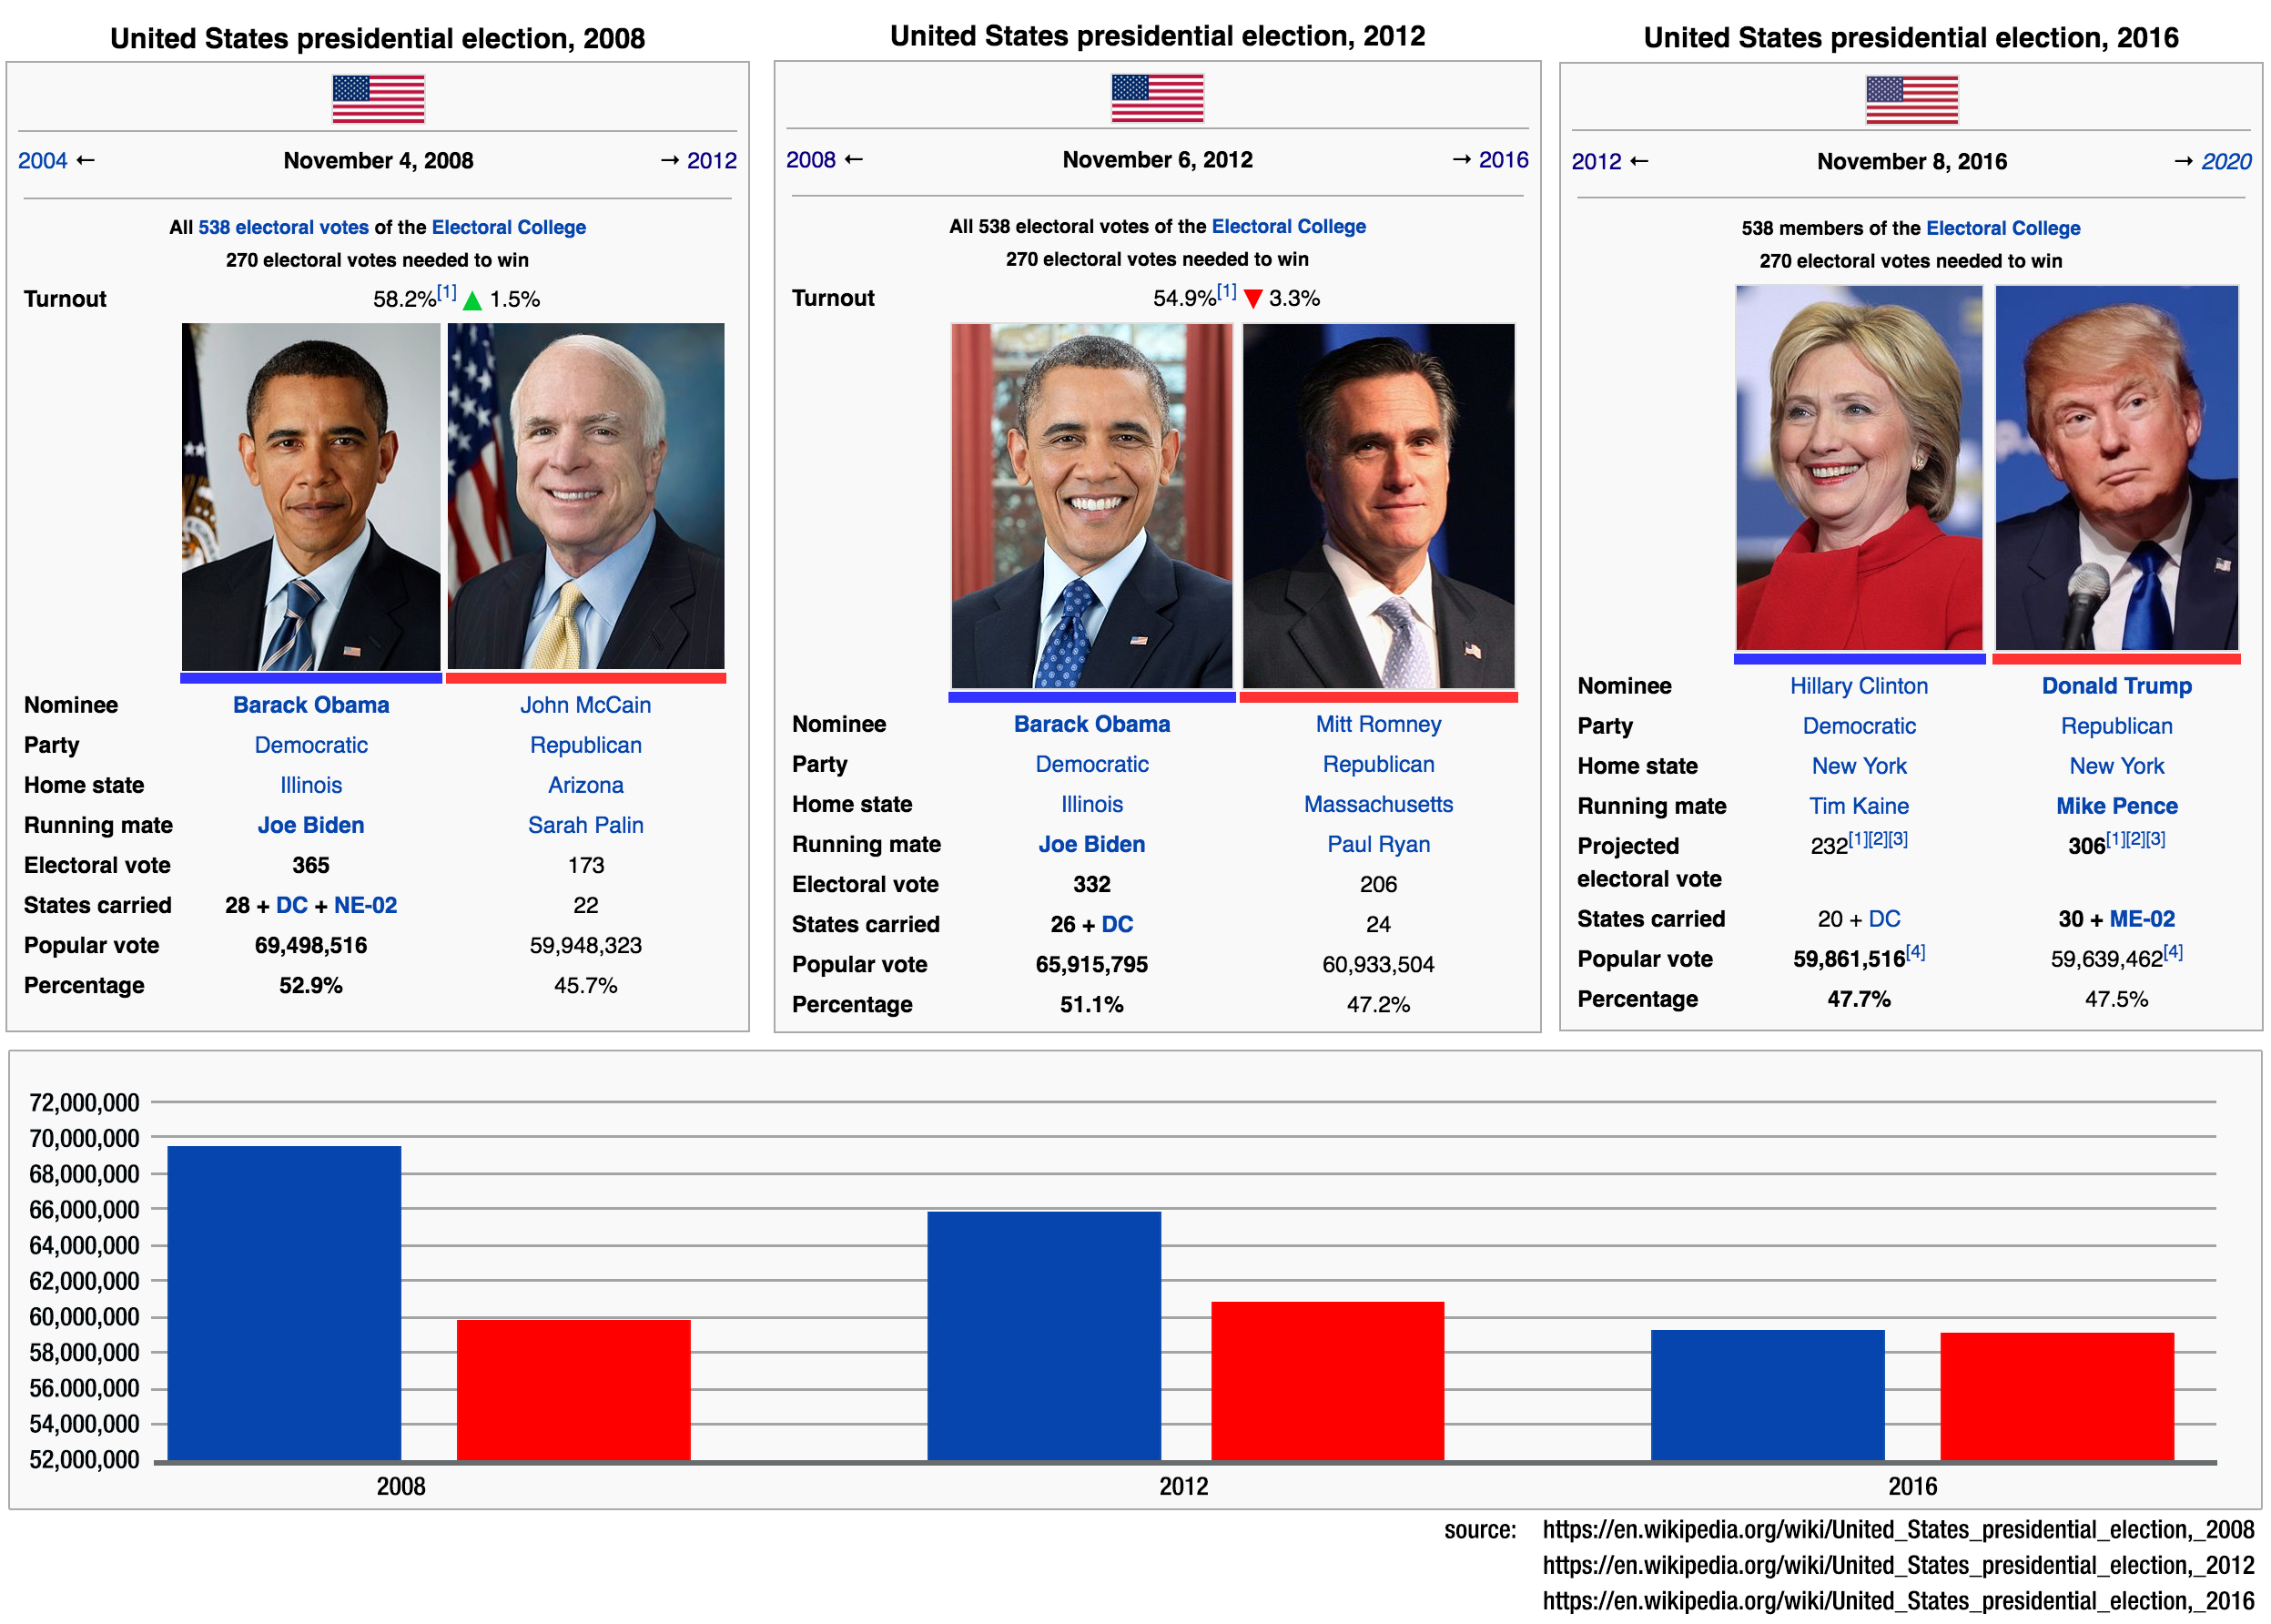 i-made-a-chart-showing-the-popular-vote-turnout-in-2008-2012-and-2016-imgur